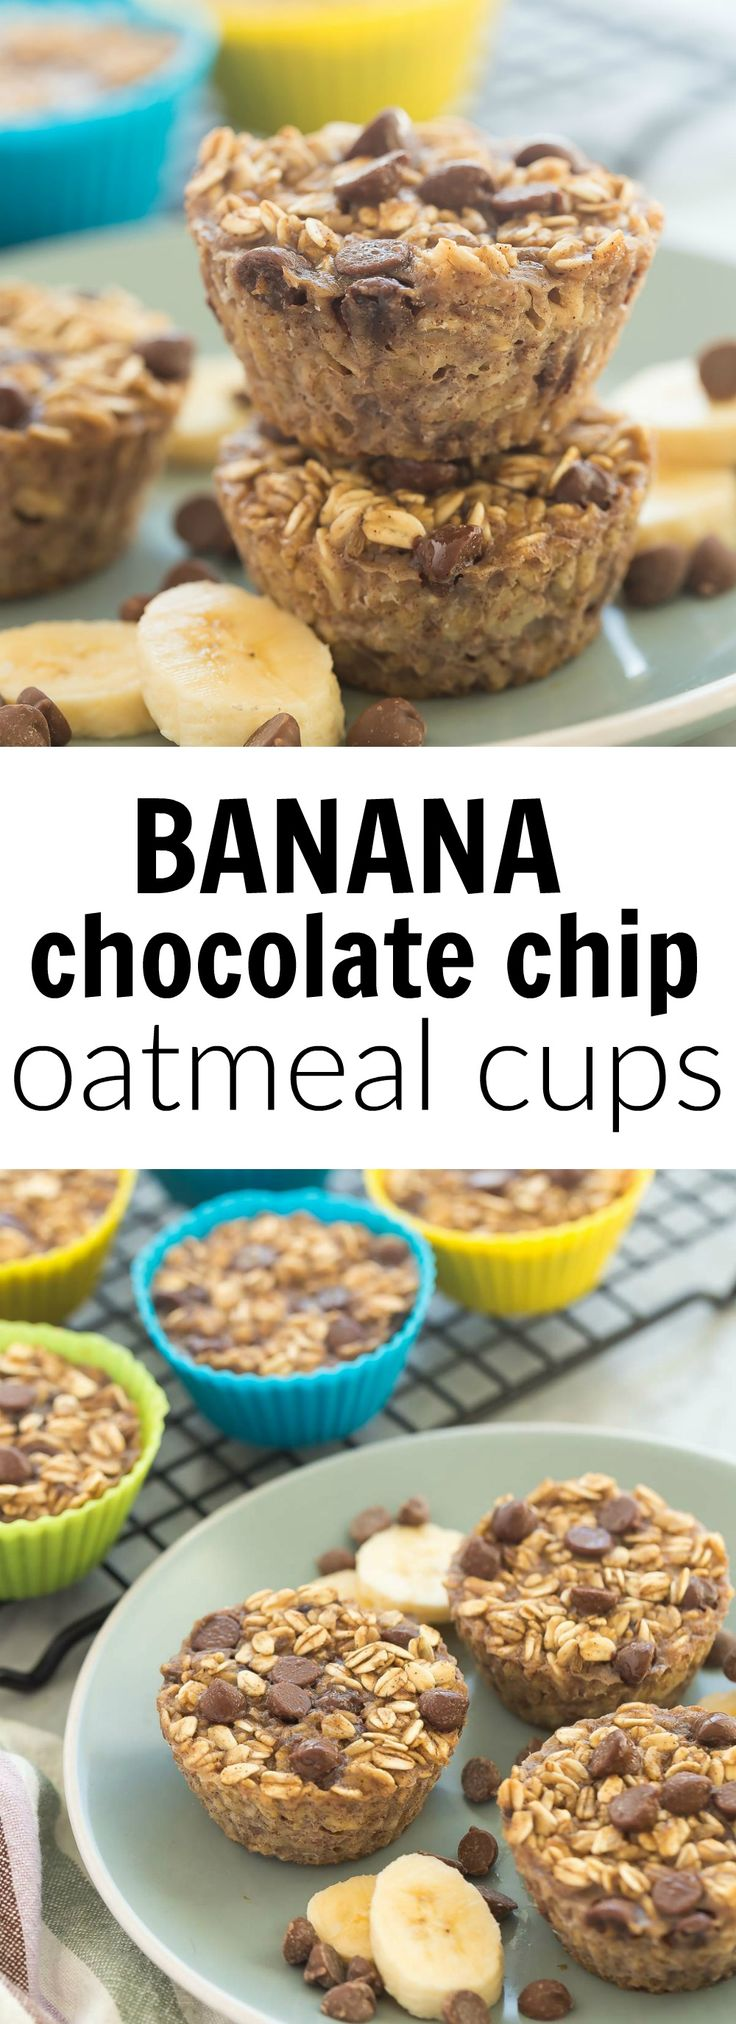 These Banana Chocolate Chip Baked Oatmeal Cups are an easy, healthy breakfast (yes, you can swap the chocolate for blueberries if you want!) that is make ahead, freezer friendly, and packed with protein and fiber. Includes how to recipe video.   breakfast recipe   brunch   healthy recipe   low calorie   oatmeal muffin   oats  